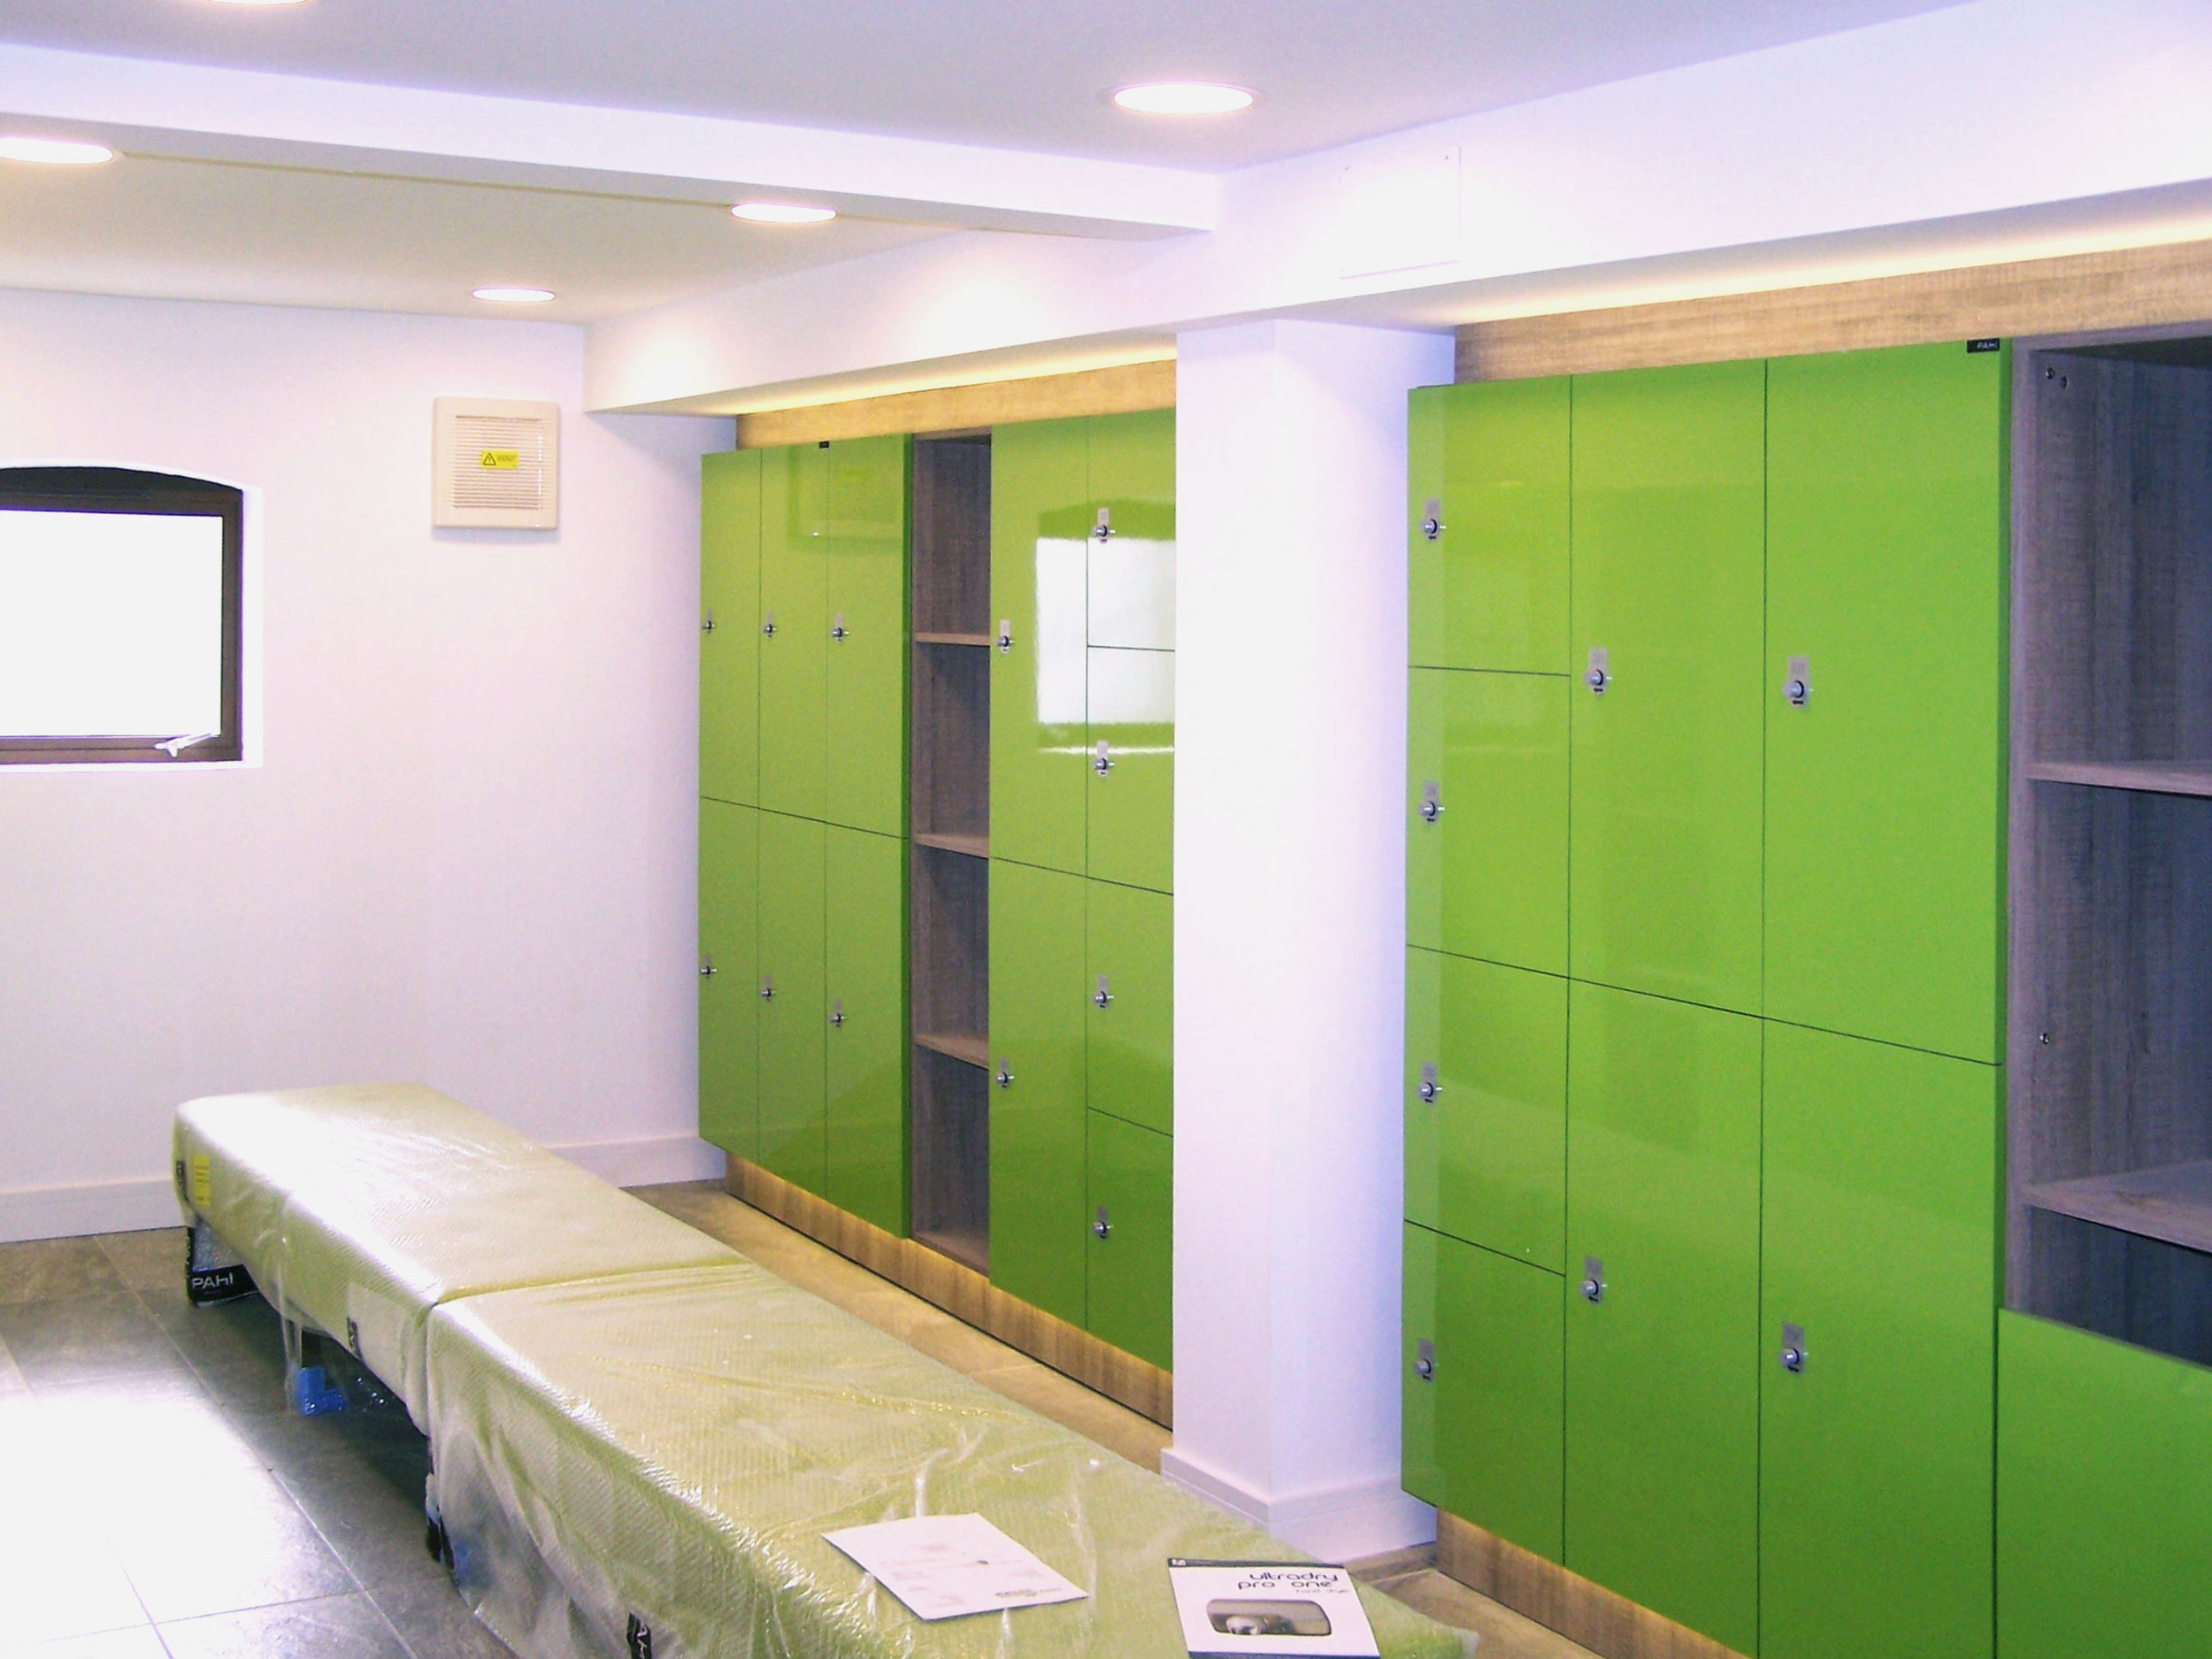 Changing room and lockers